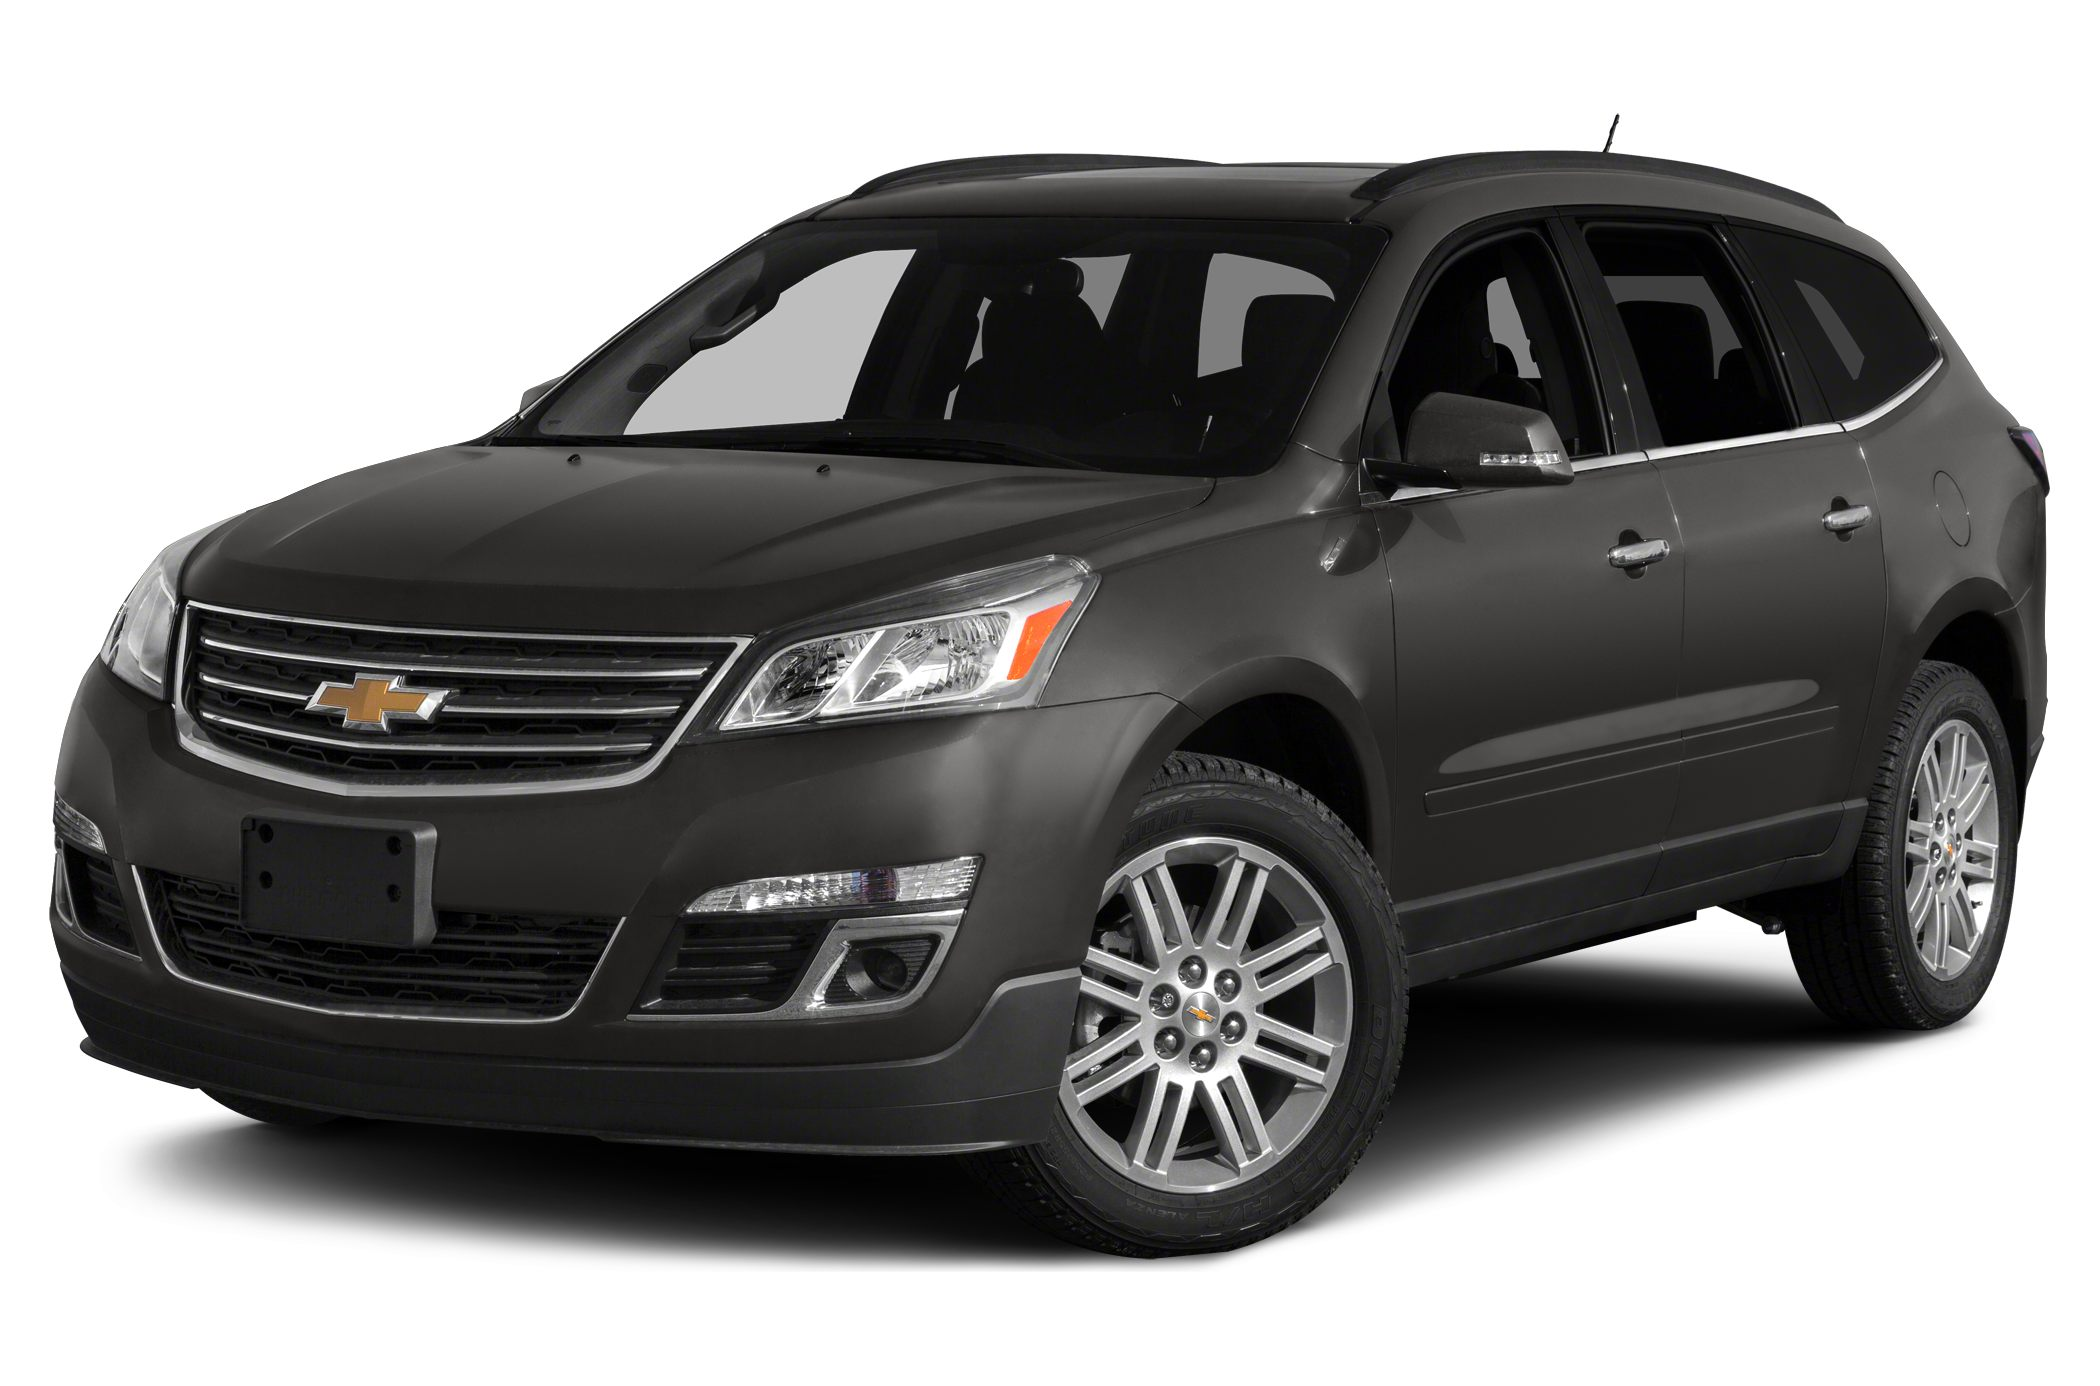 2015 Chevrolet Traverse LS SUV for sale in Stockton for $31,870 with 6 miles.